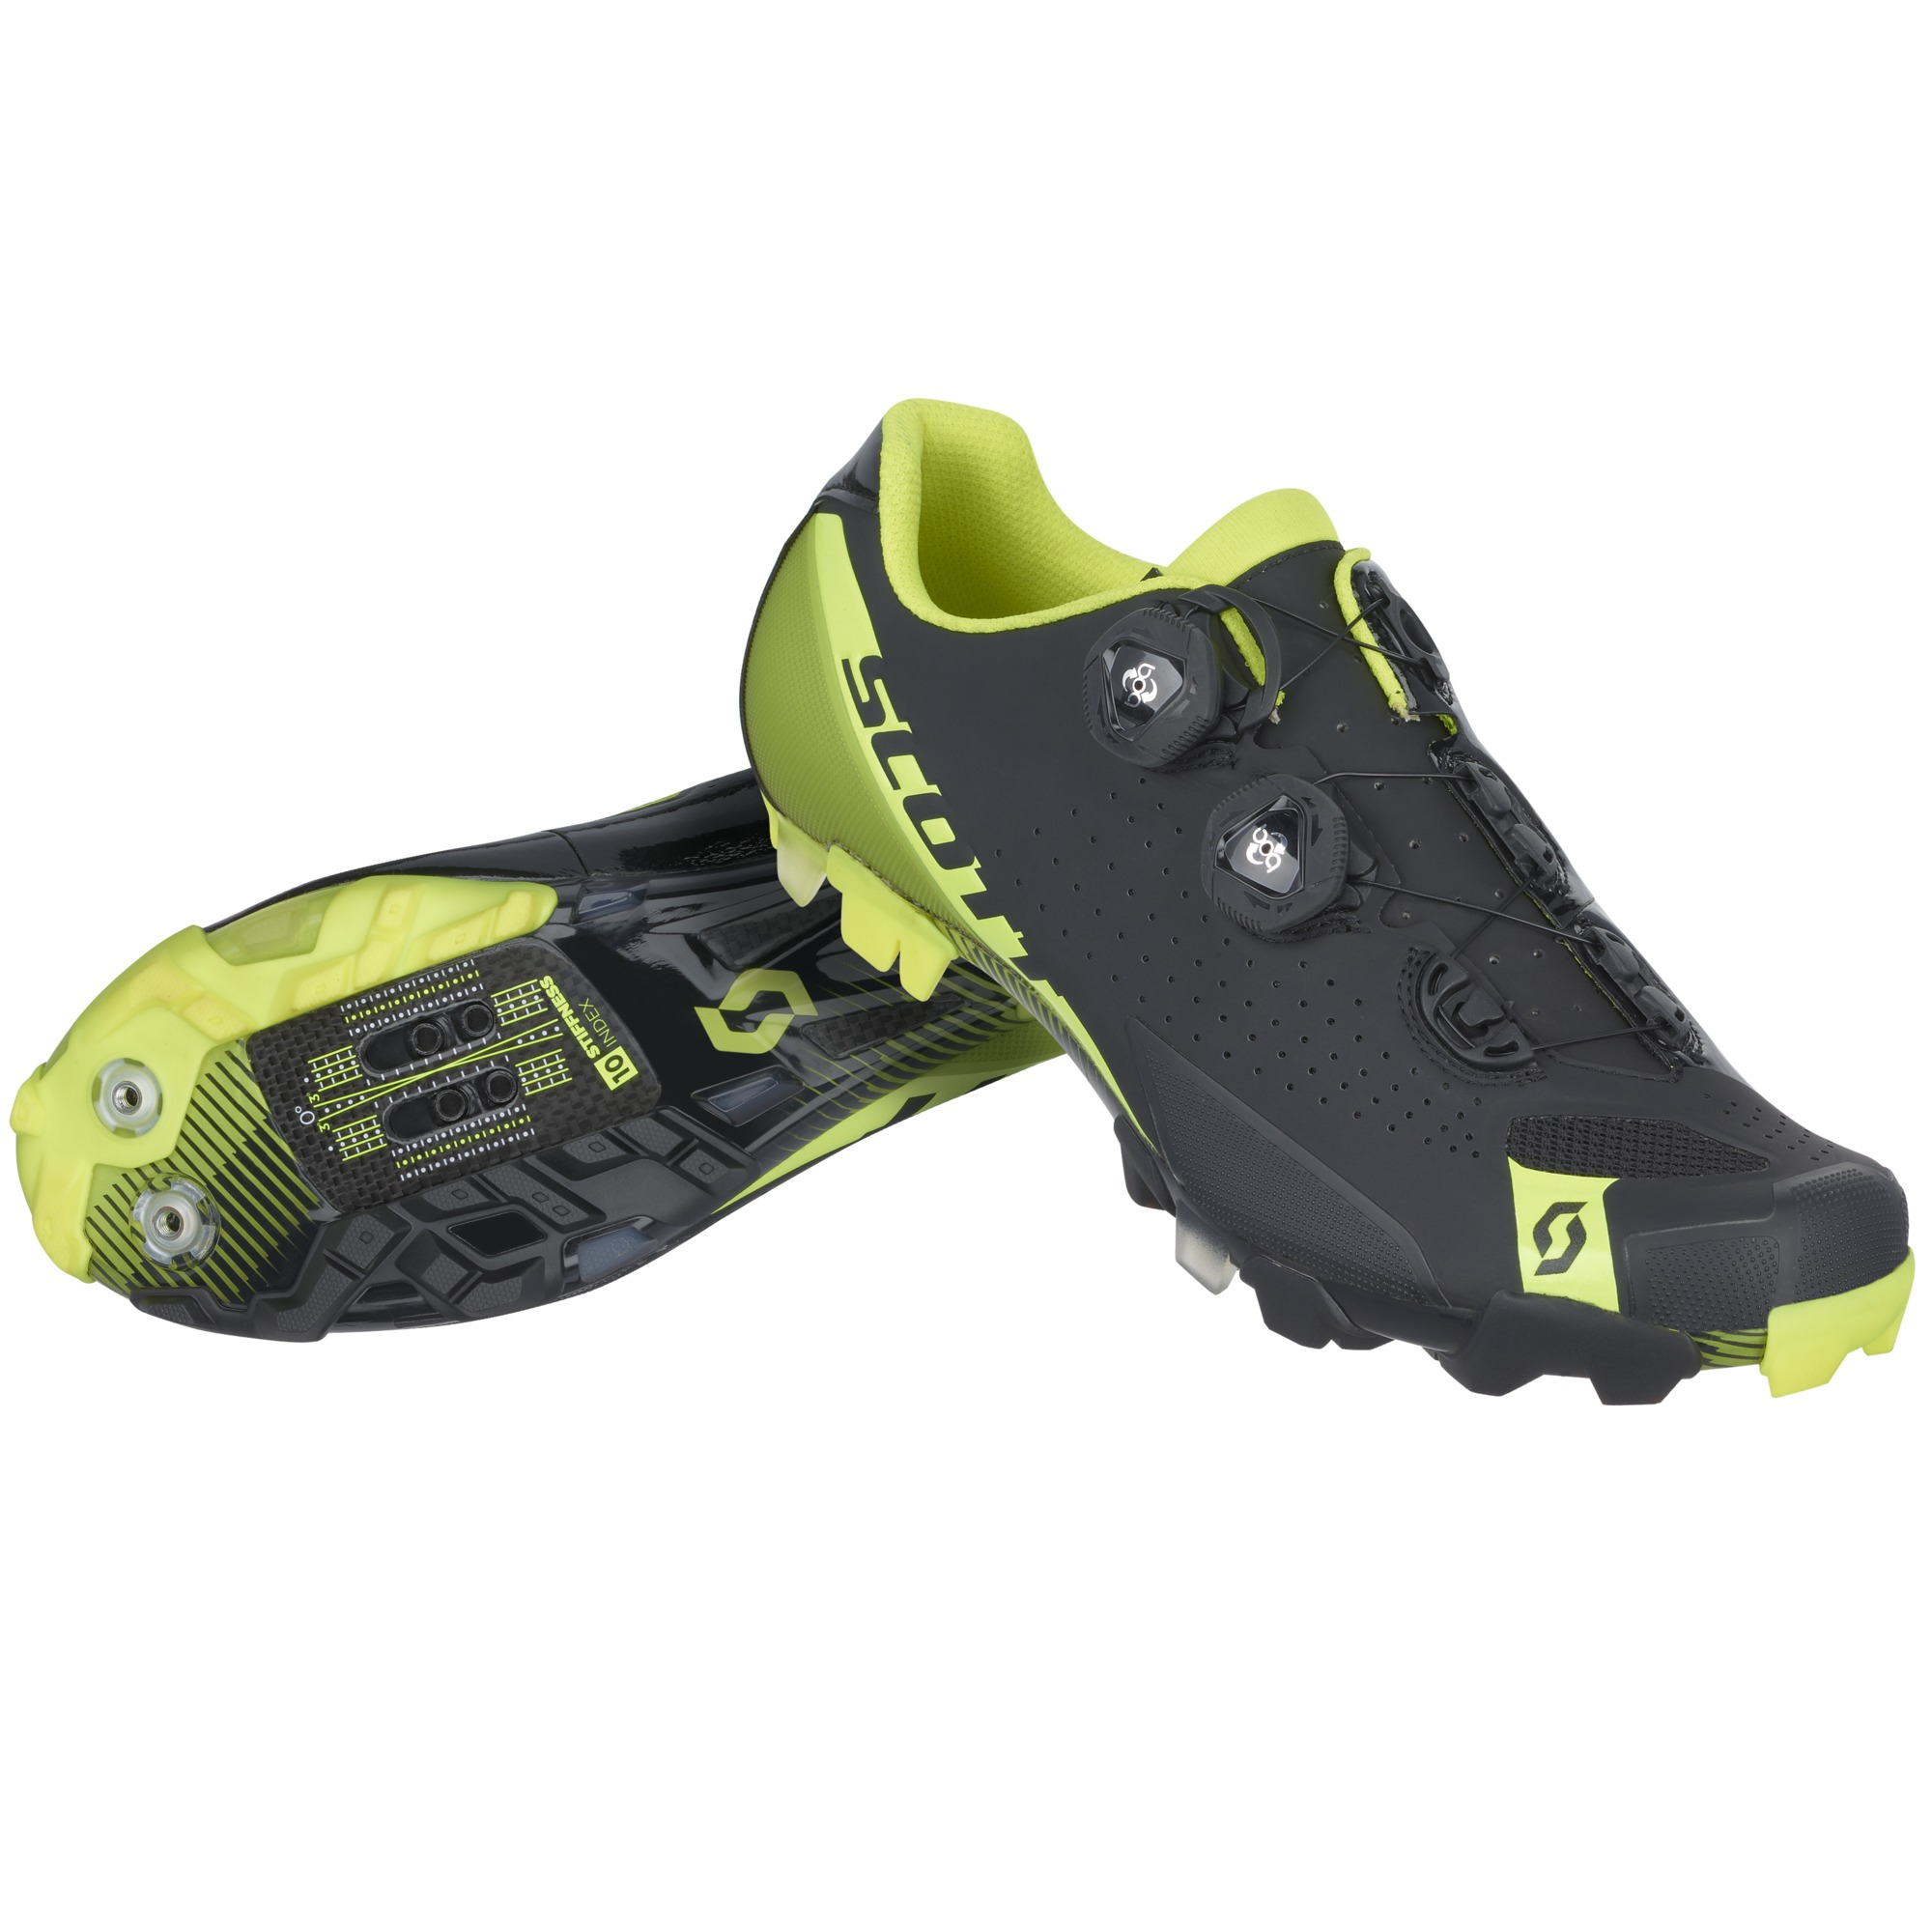 Top Off Road Bike Shoes